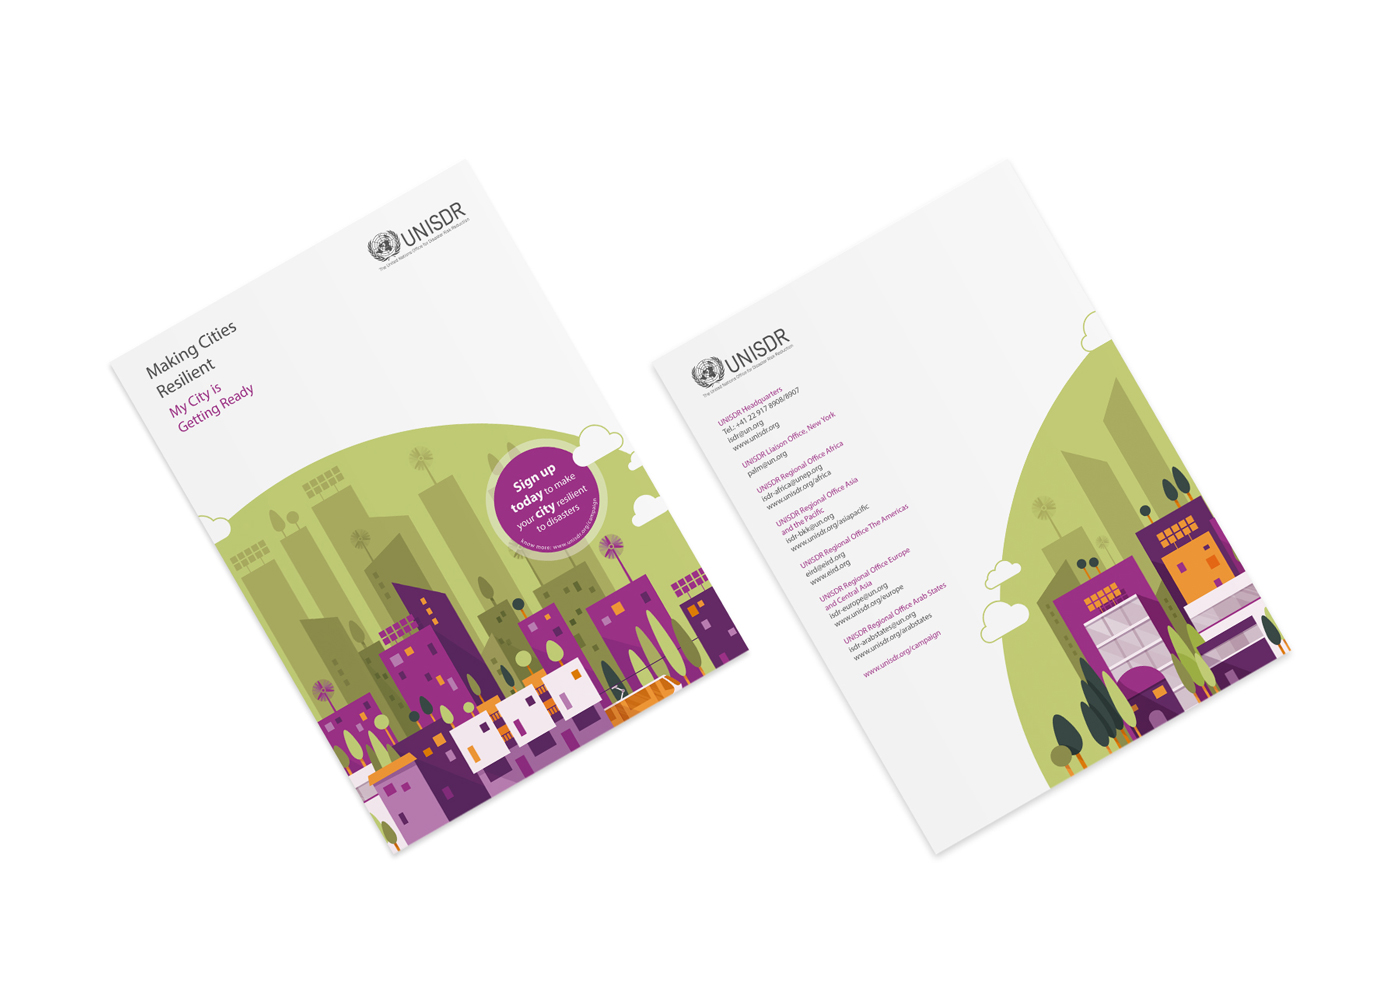 Making Cities Resilient - A4 Posters